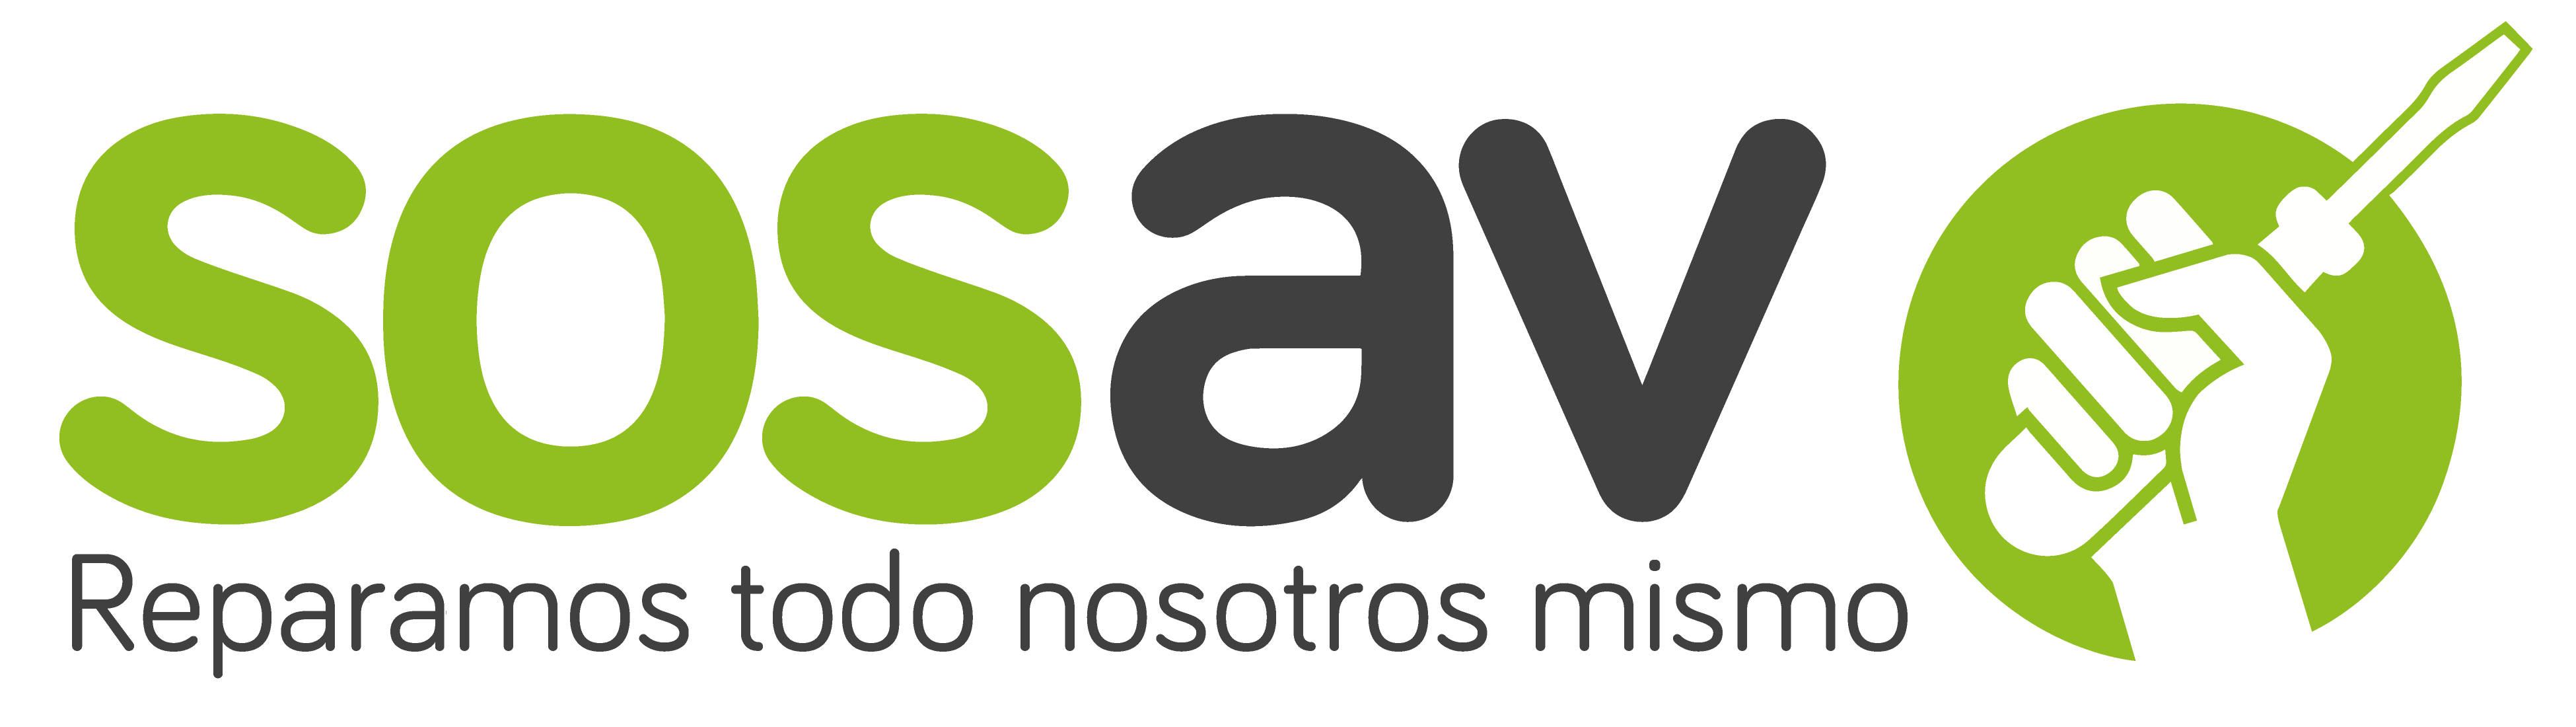 SOSav logo